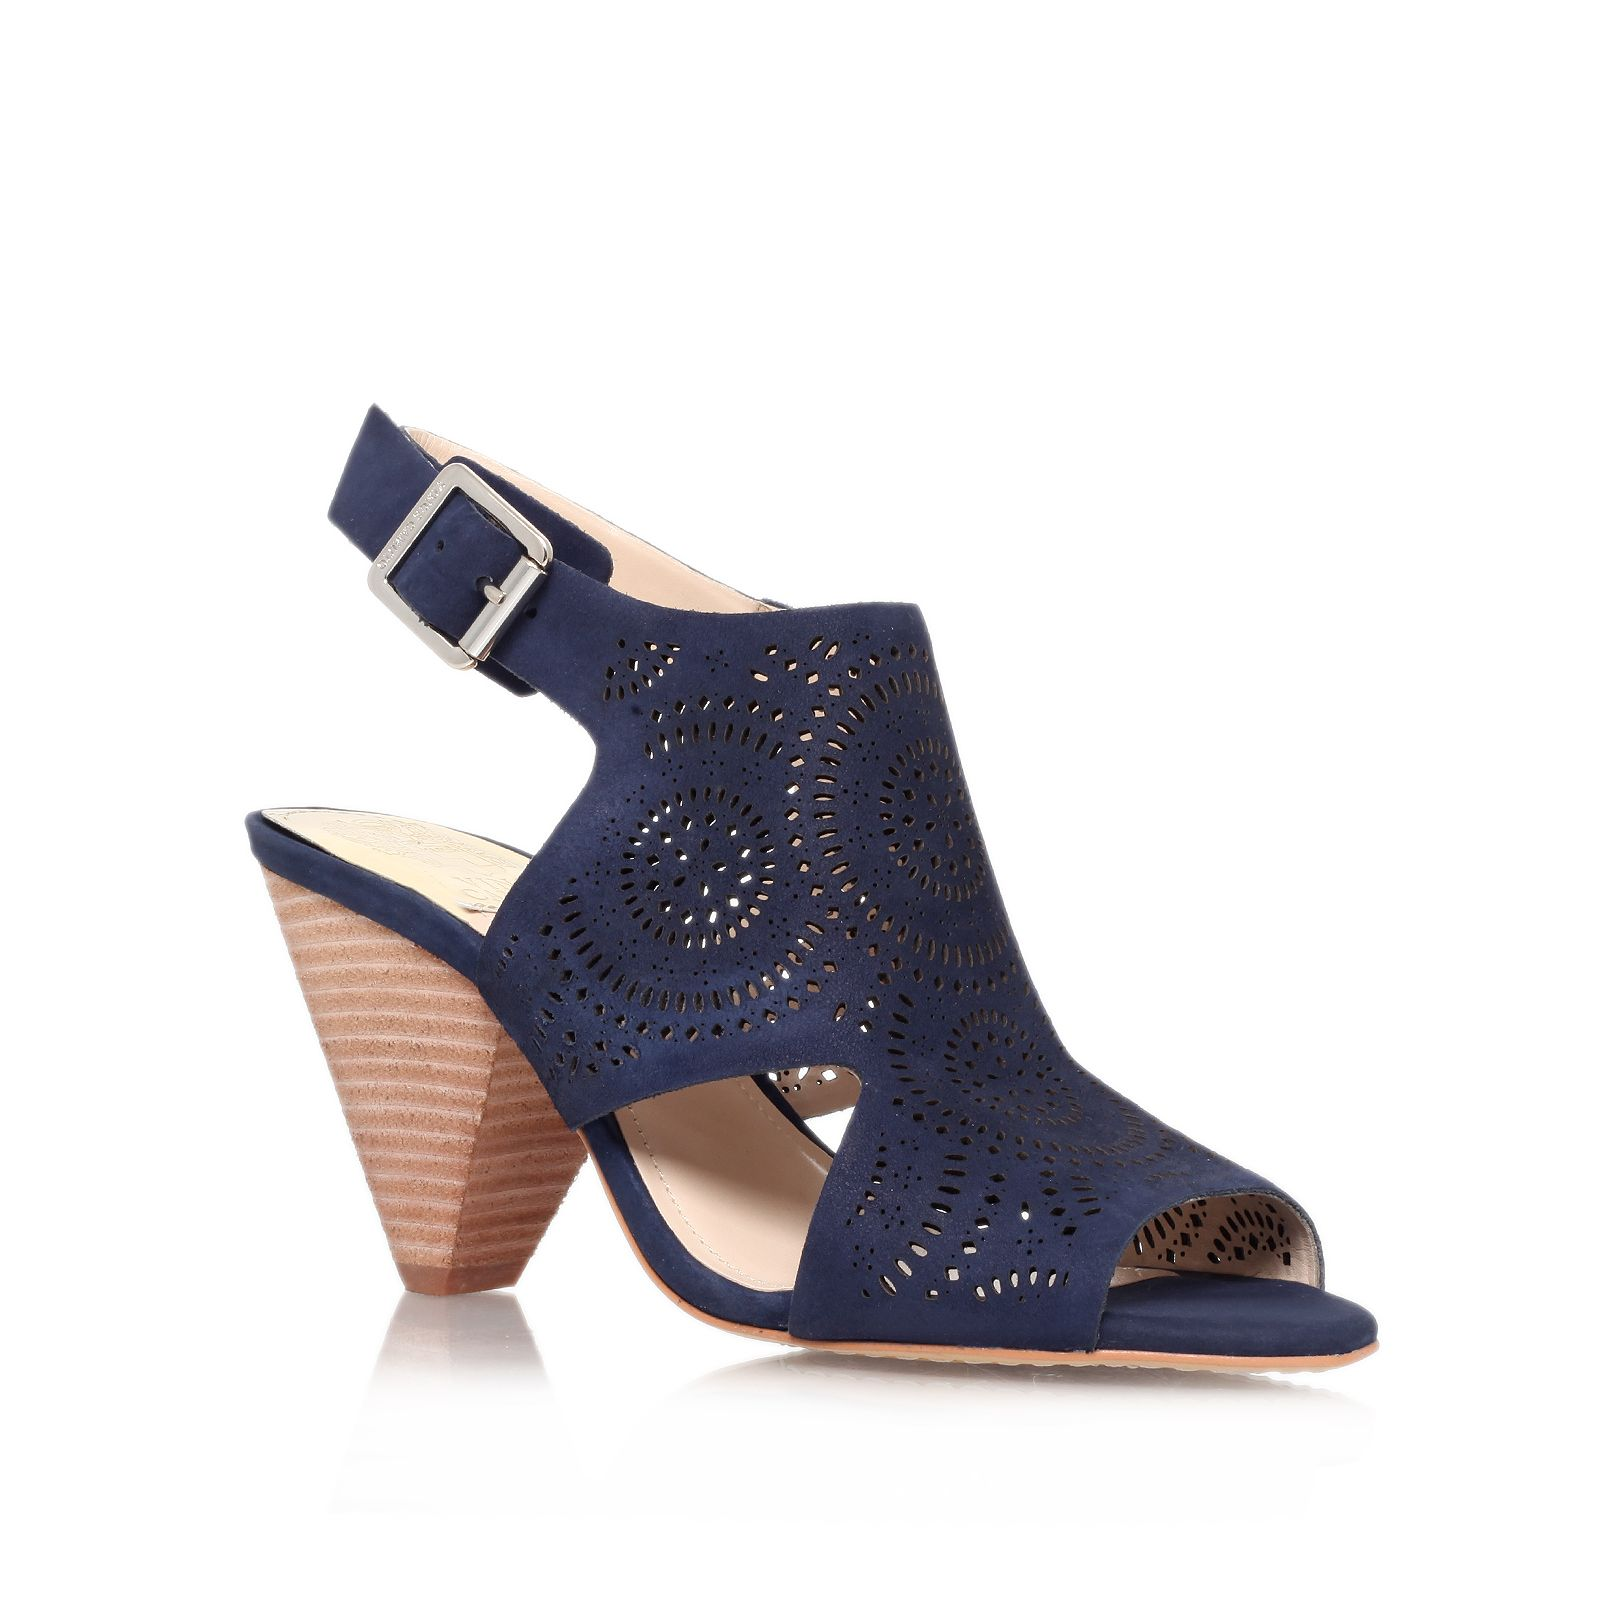 Ellezi mid heeled court shoes